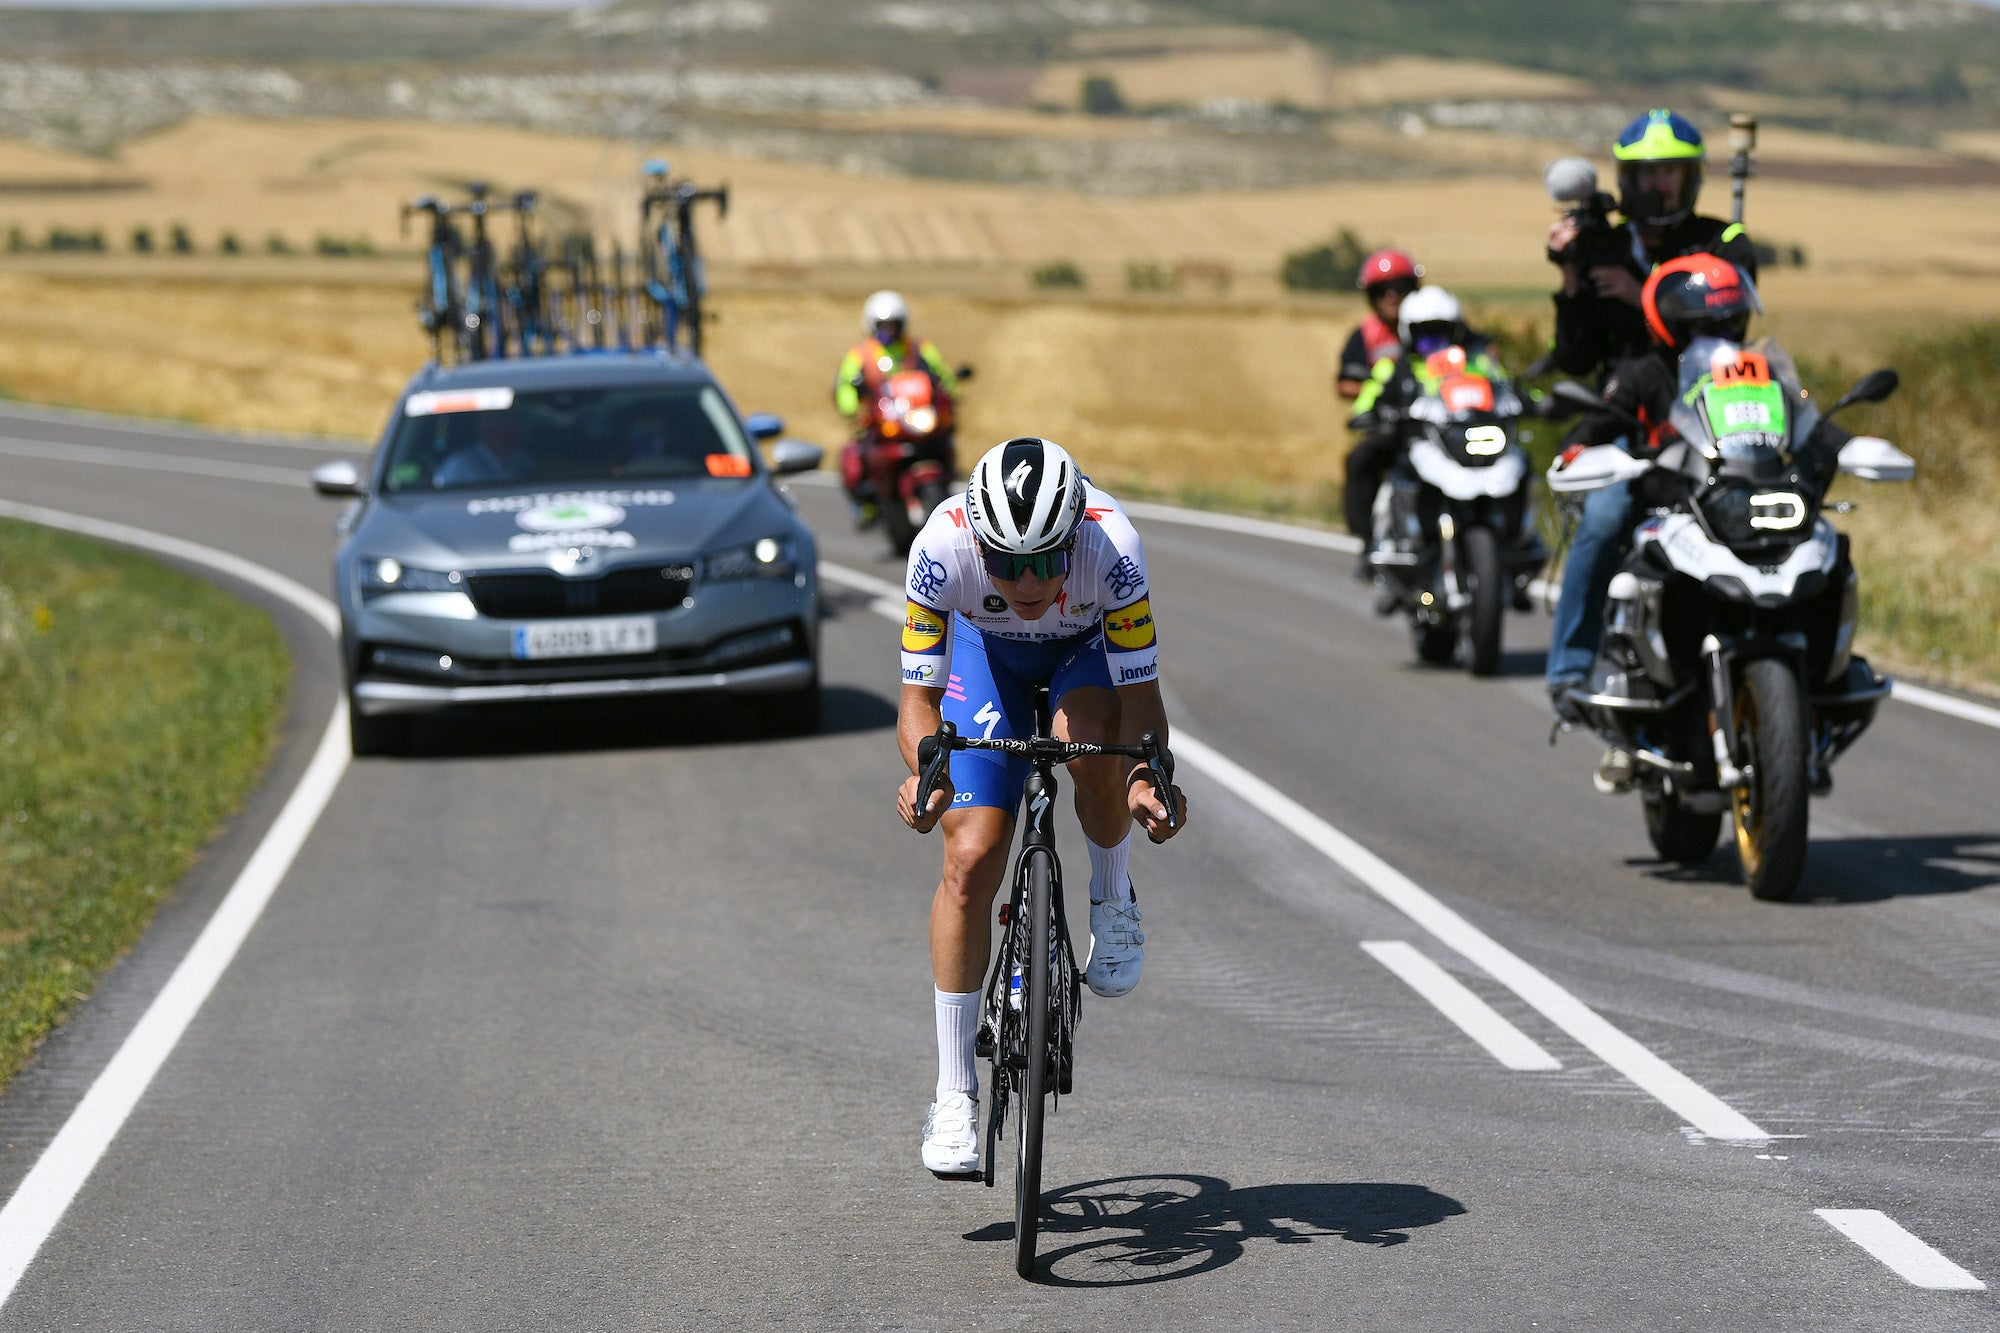 Burgos victory is next step in Evenepoel's grand tour ambitions – VeloNews.com